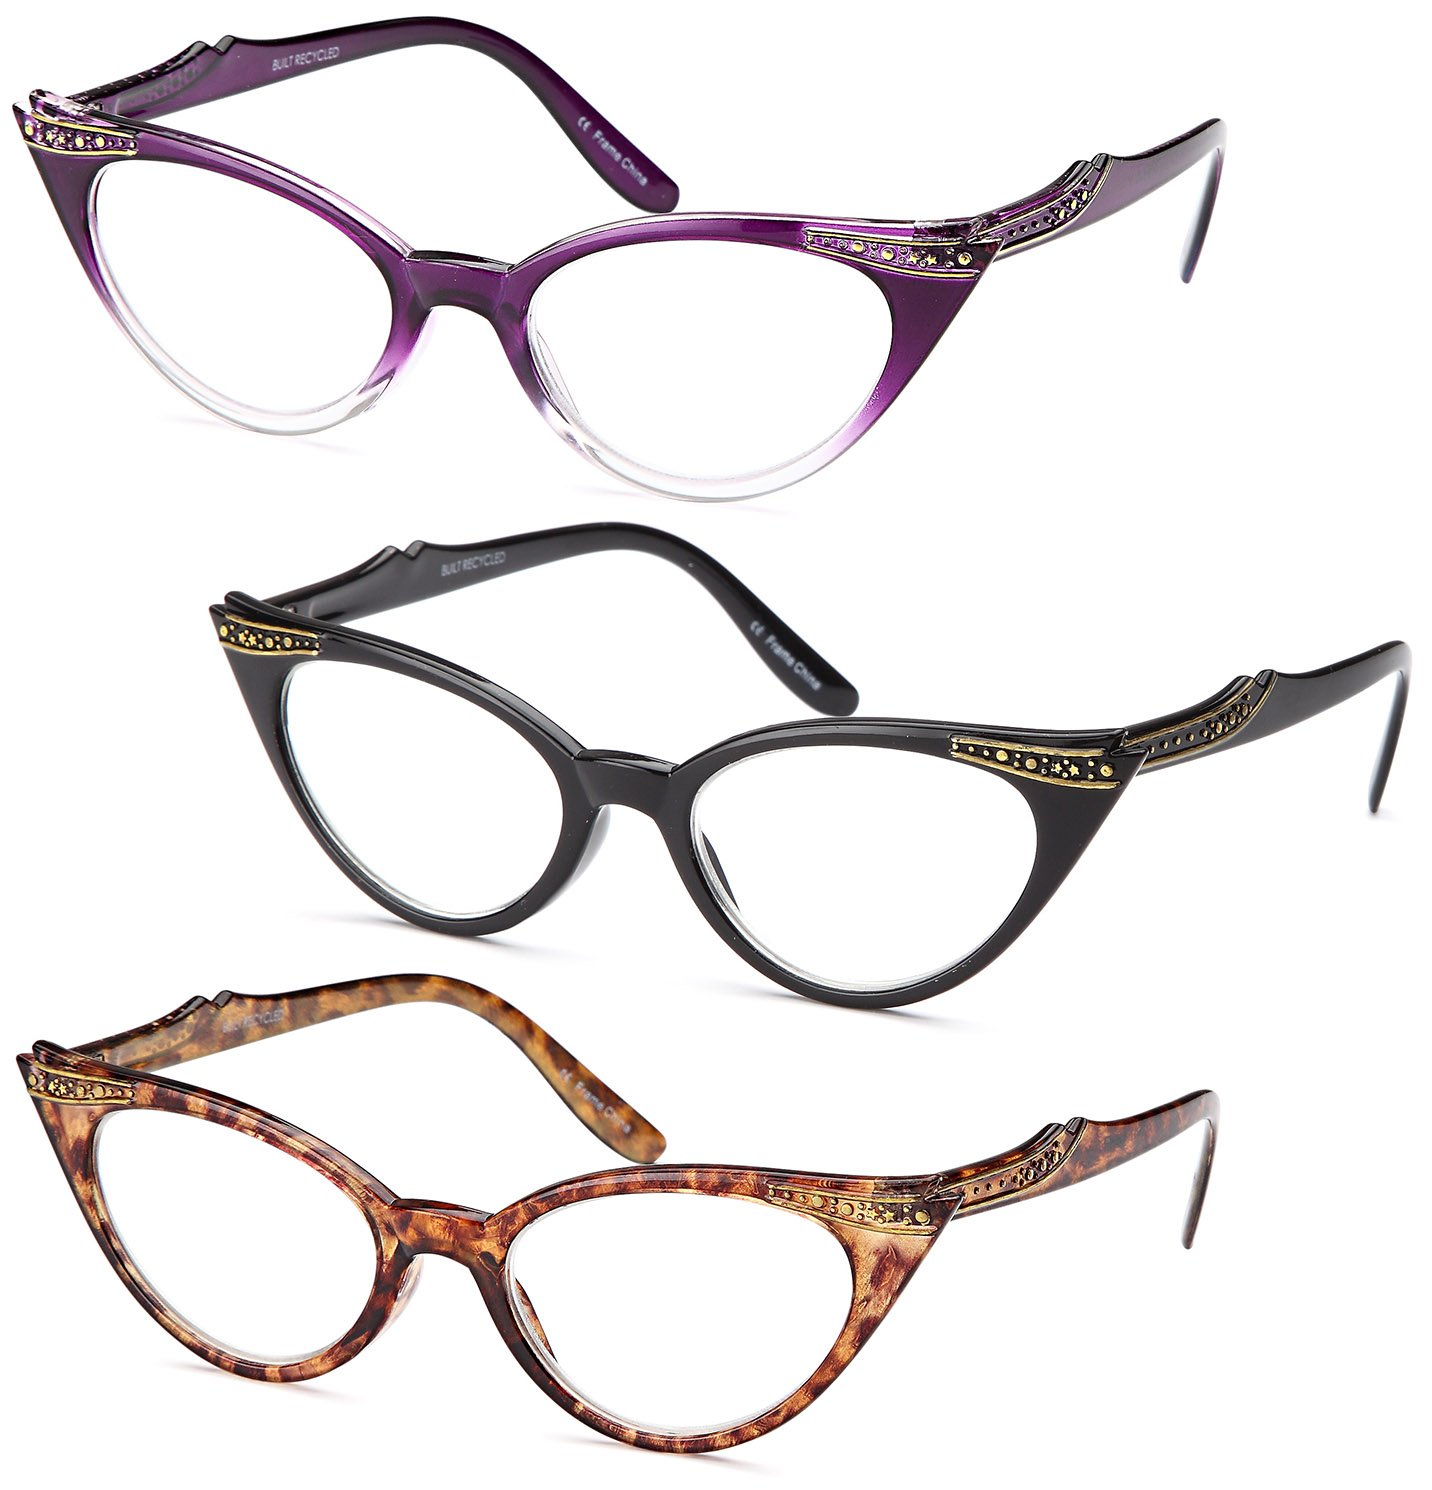 GAMMA RAY 3pk Womens Cat Eye Vintage Reading Glasses - 1.50 Magnification